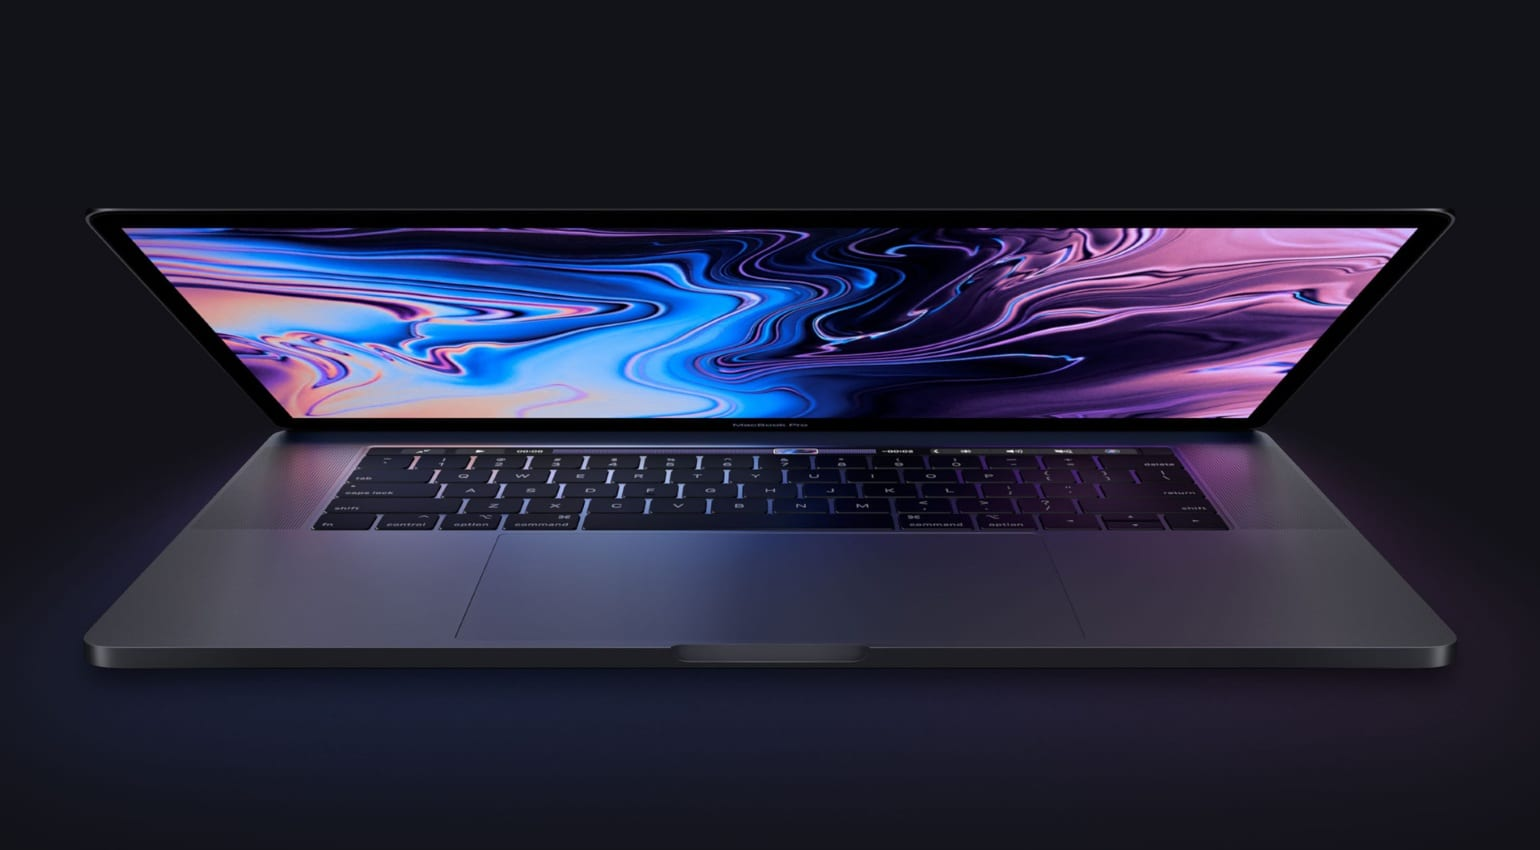 Apple's top-range MacBook Pro 2018 now supports up to 32GB of RAM